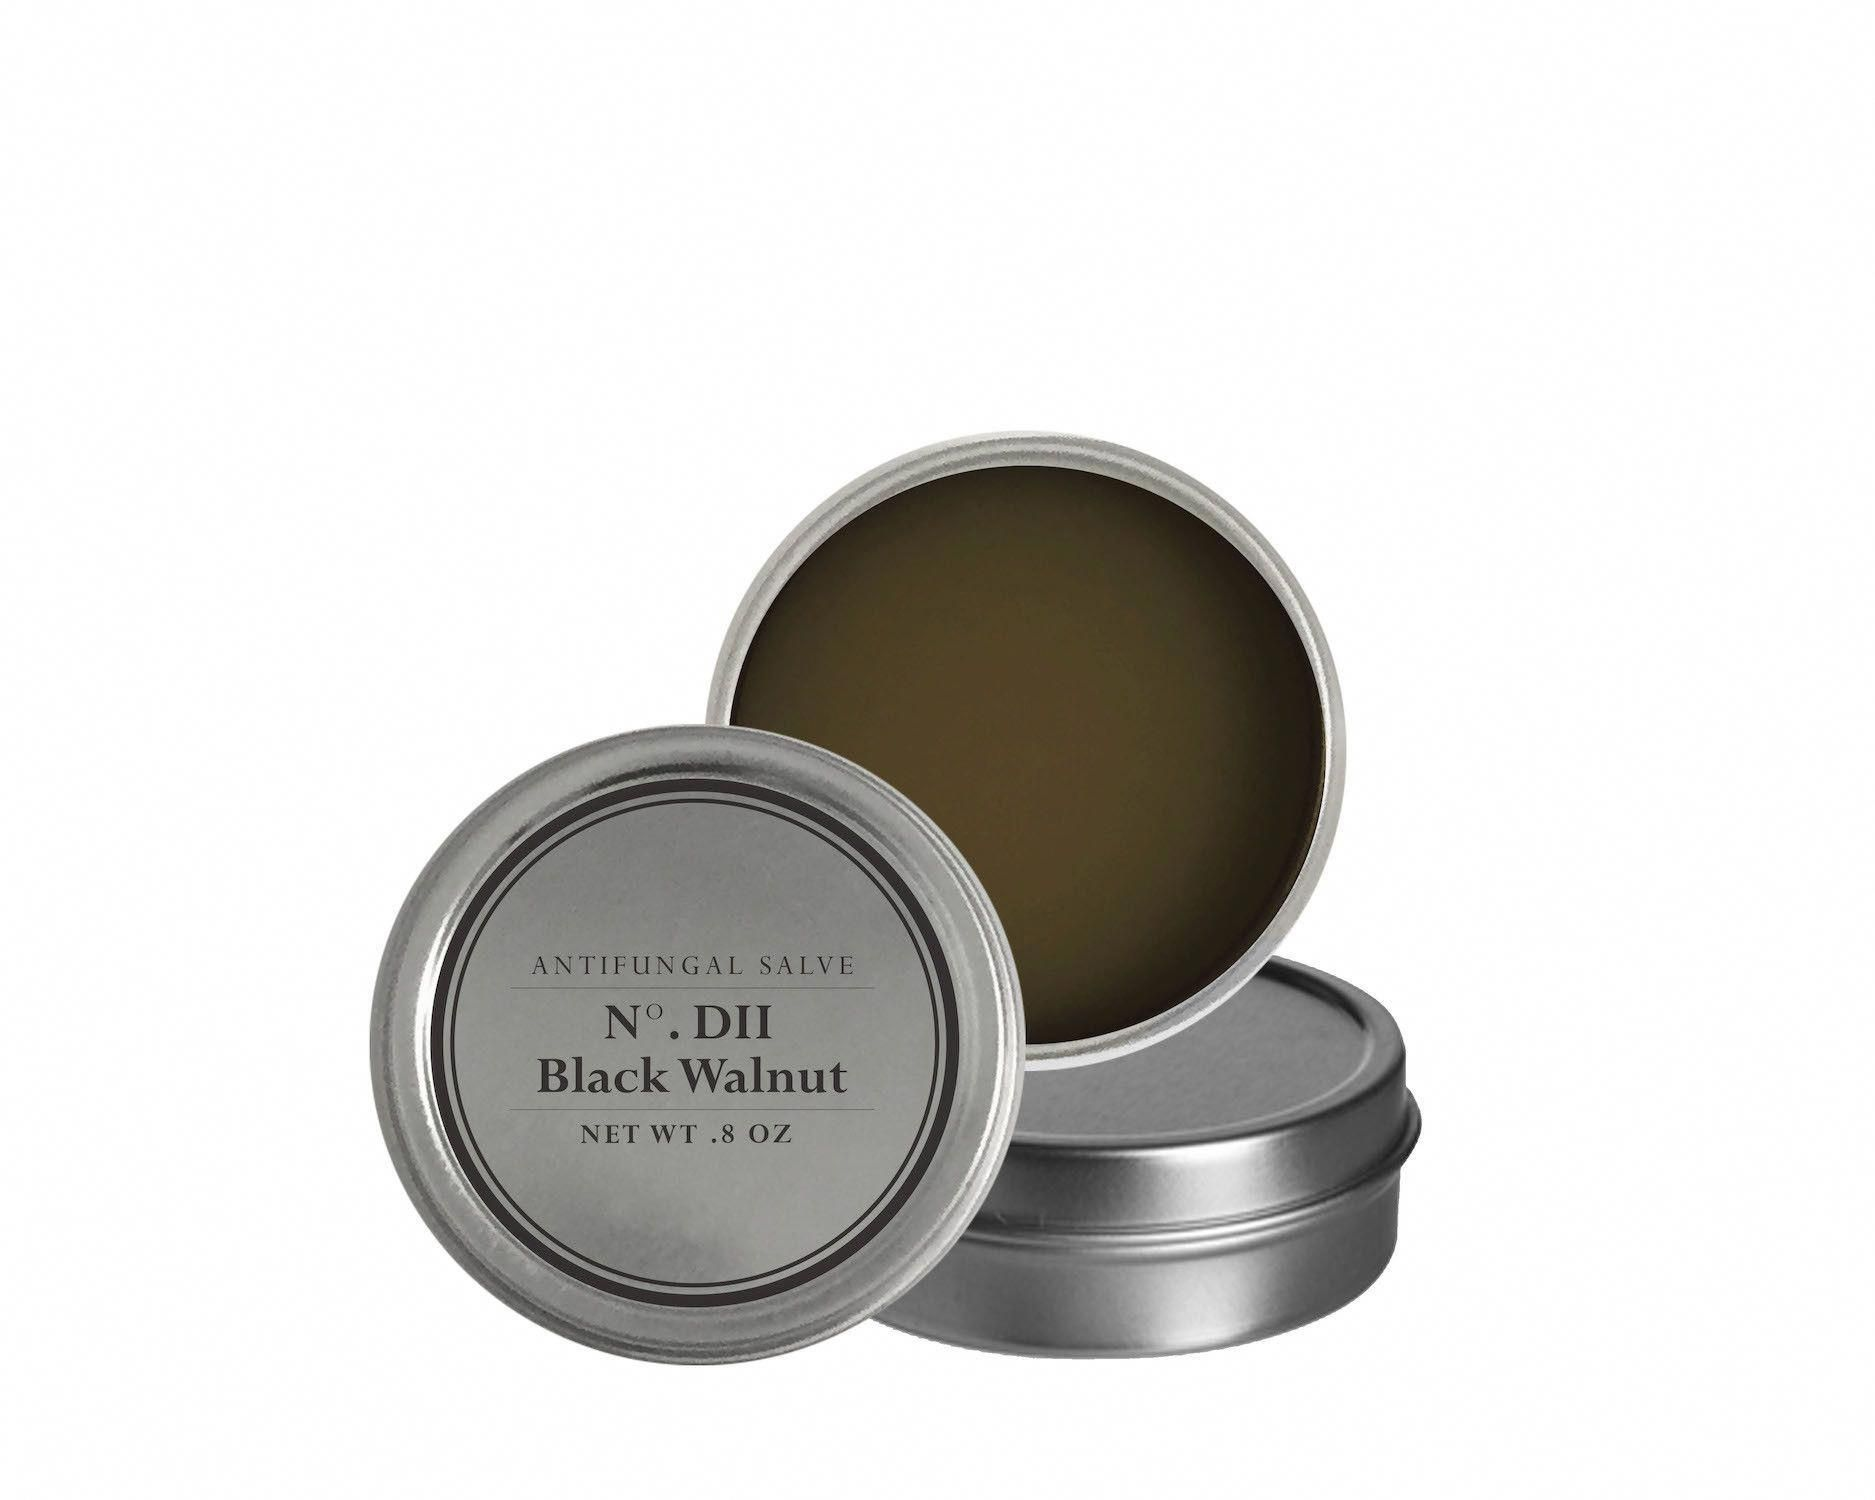 Essential Oils For Treating Fungal Infections Herbal Salves Antifungal Drawing Salve